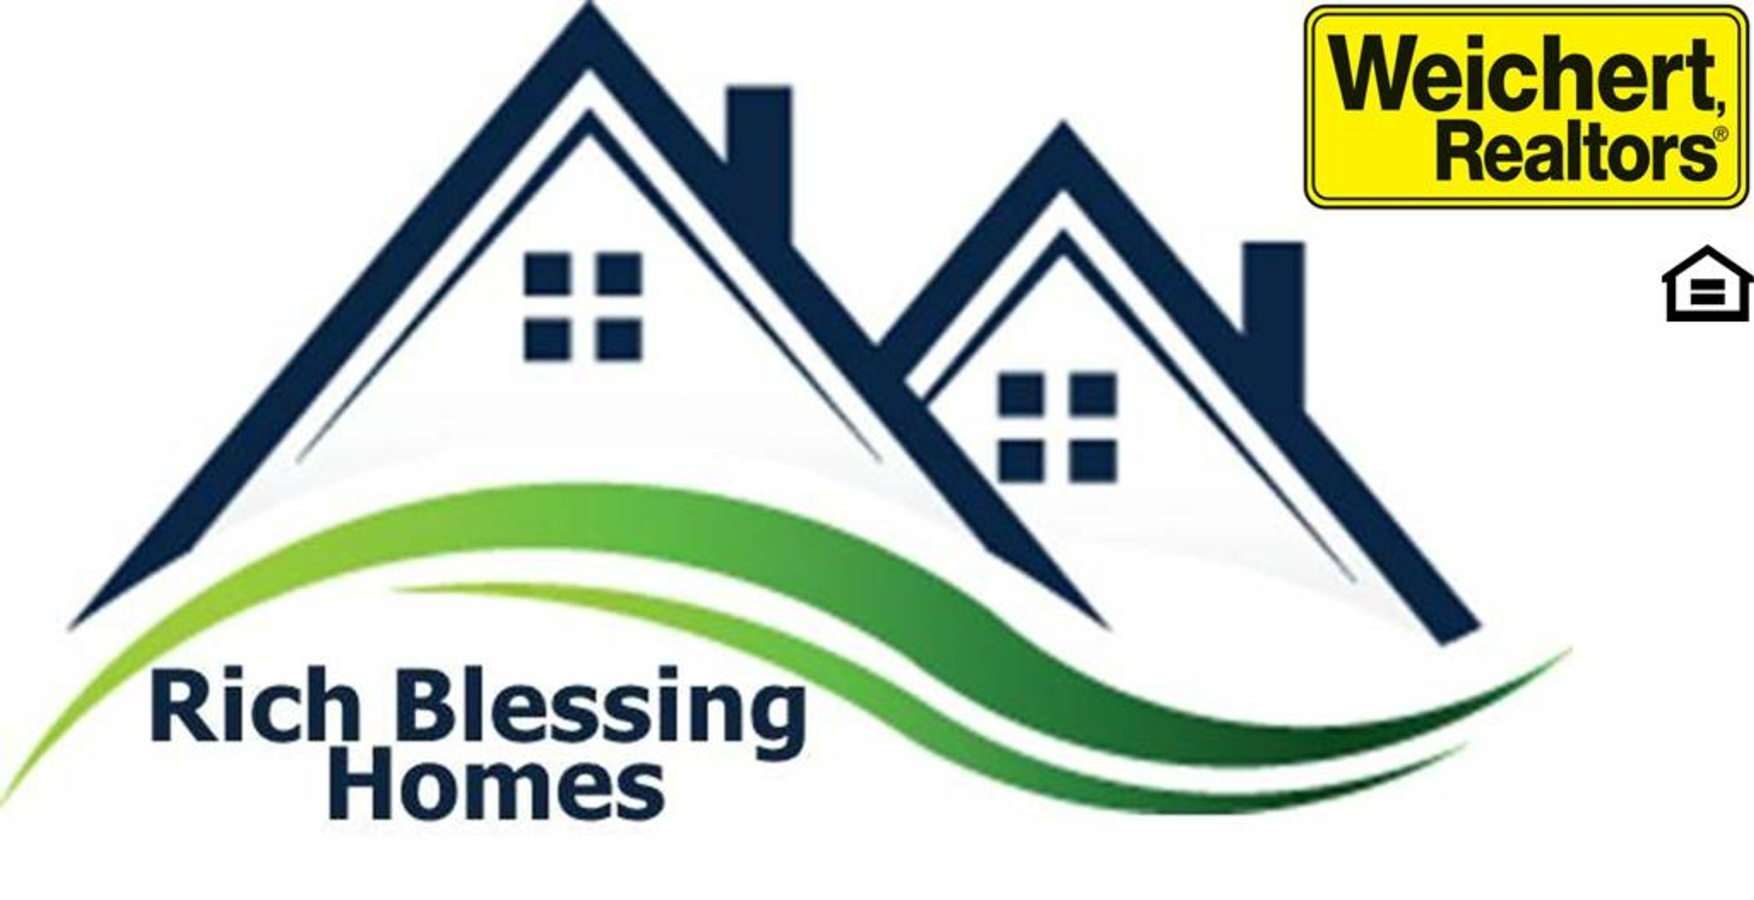 Rich Blessing Homes